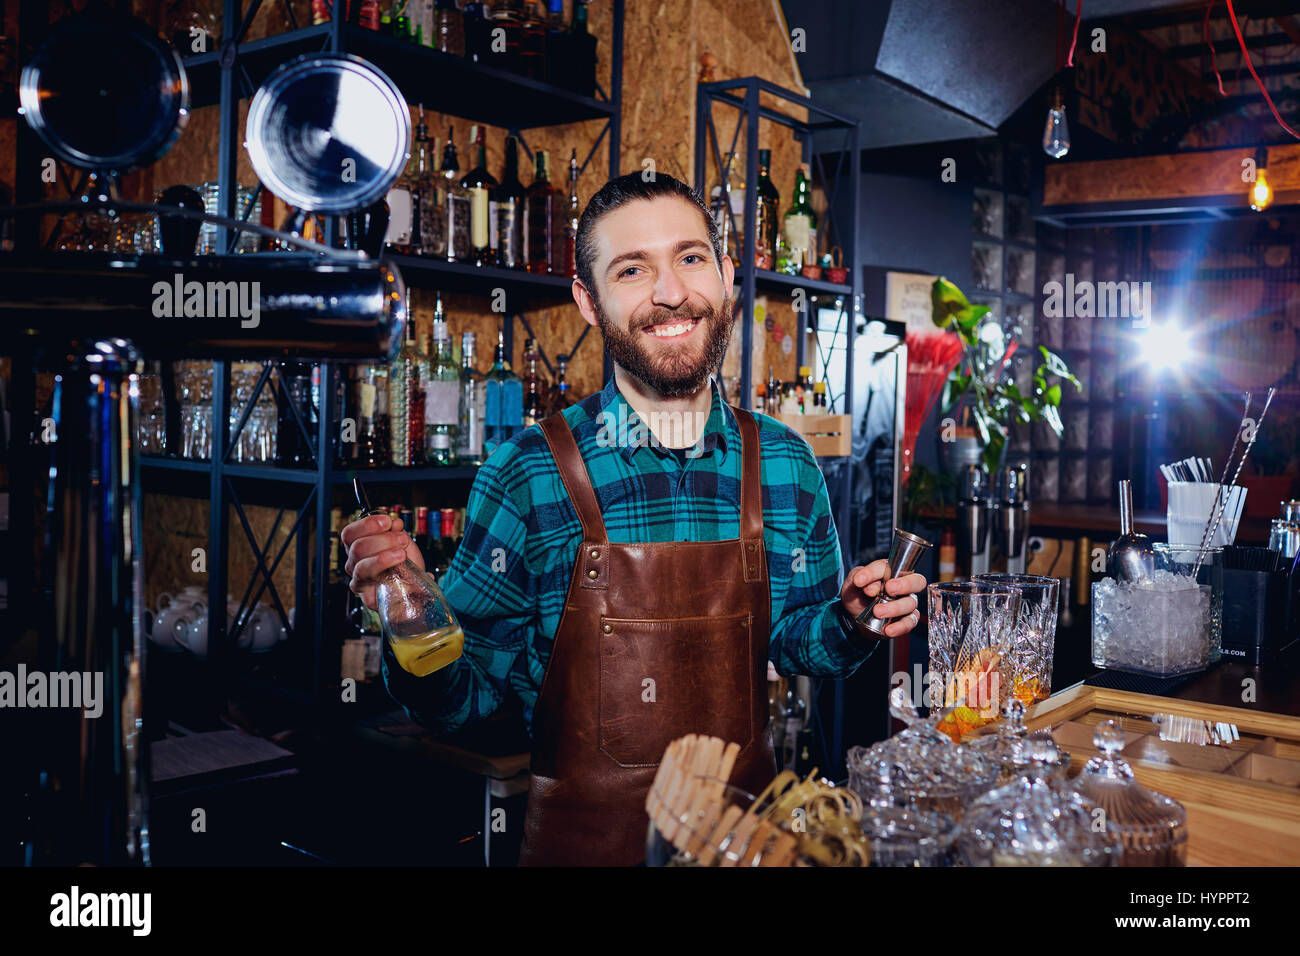 The bartender laughs making a cocktail at the bar - Stock Image